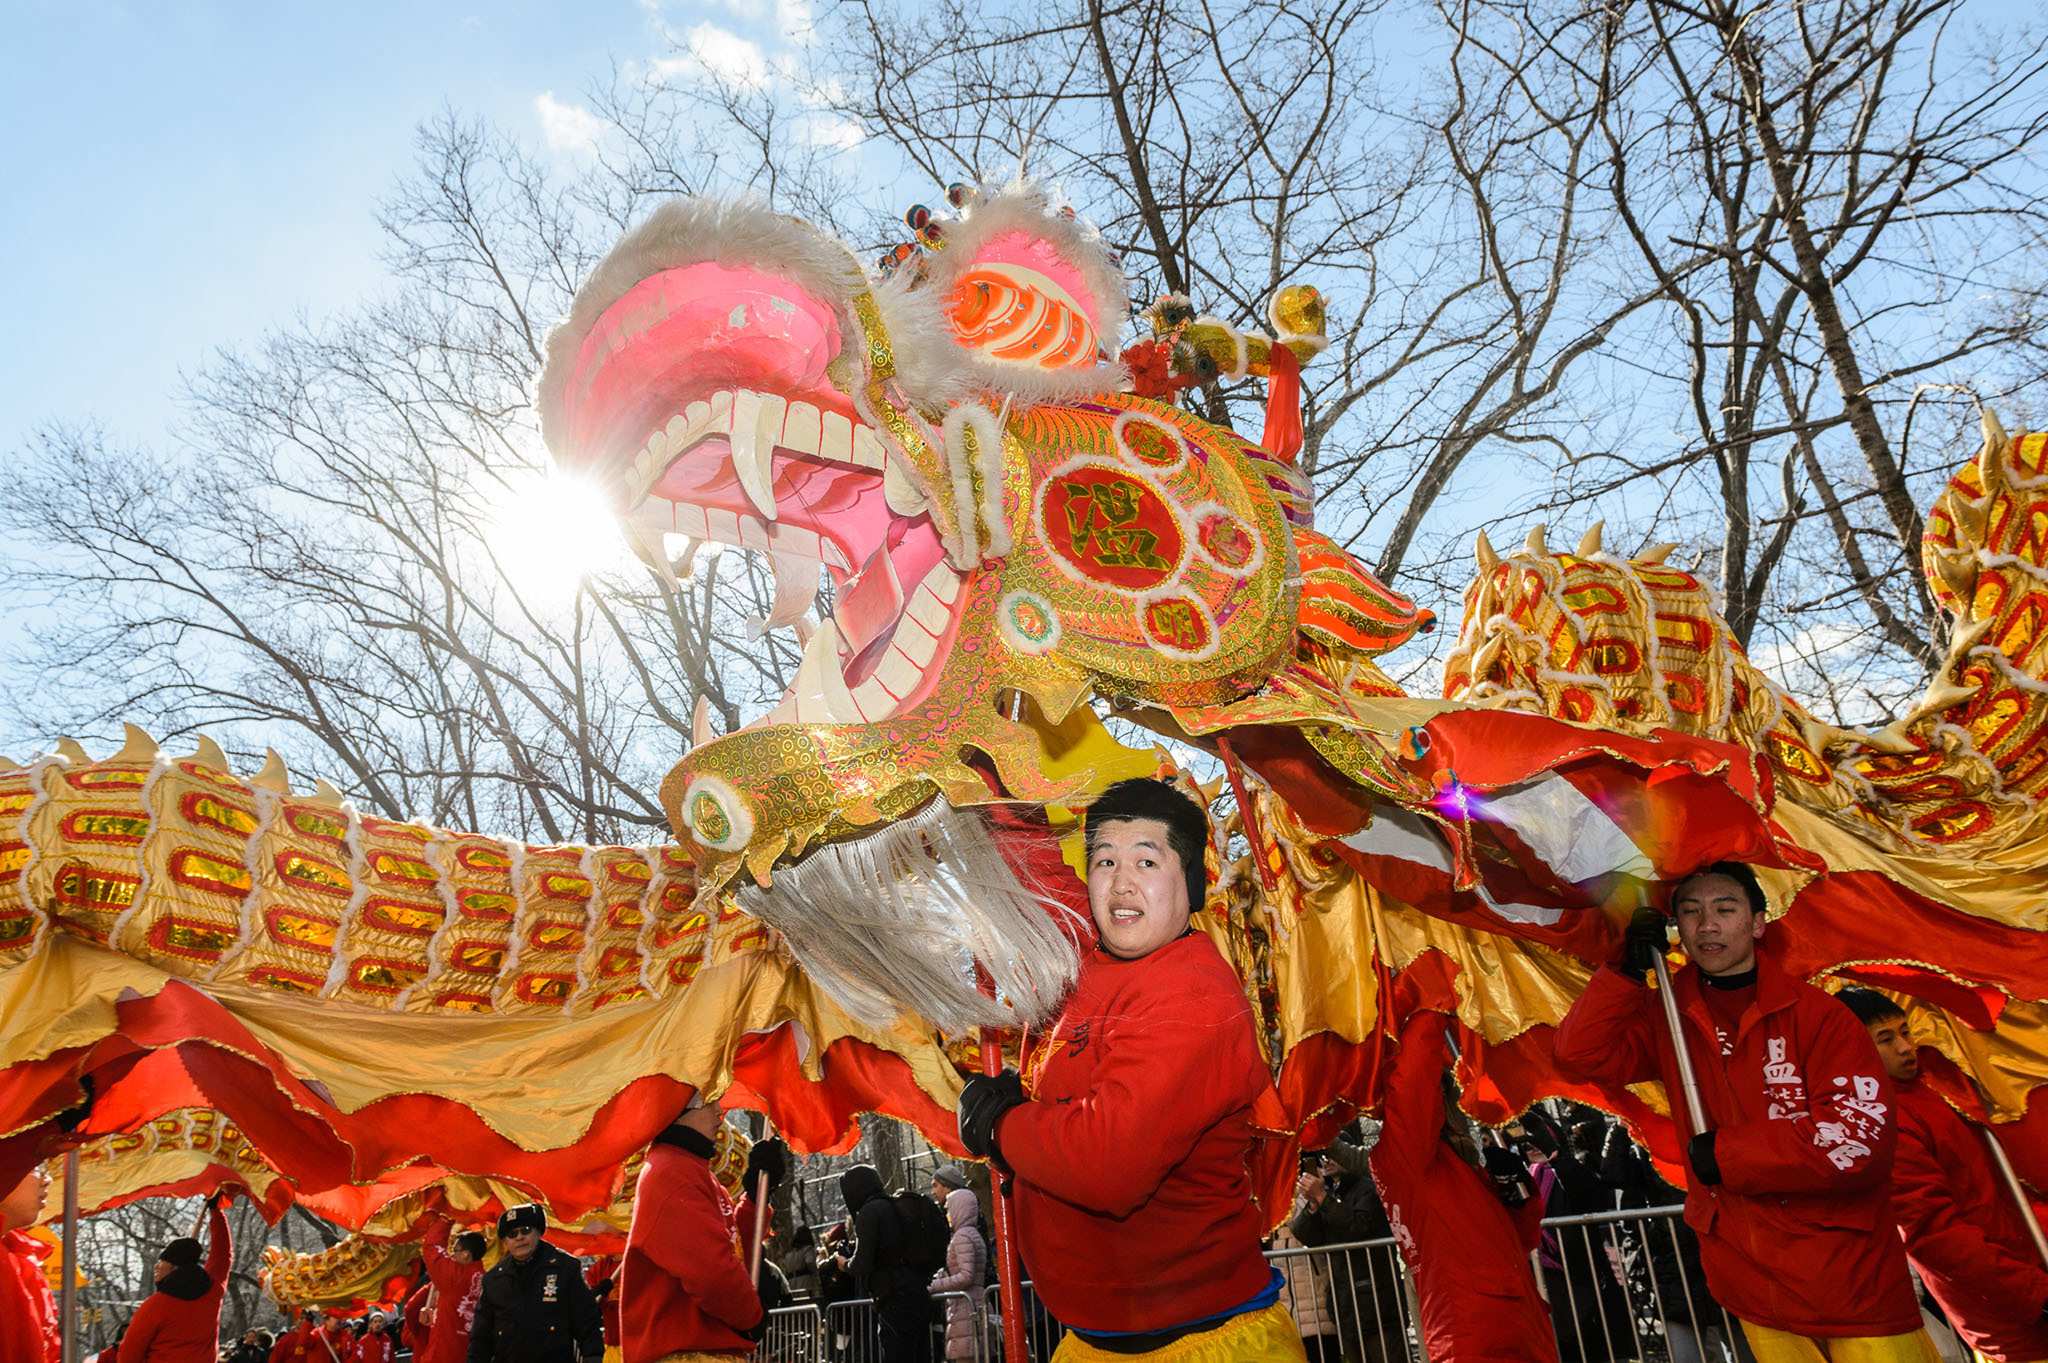 Chinatown's Lunar New Year Parade